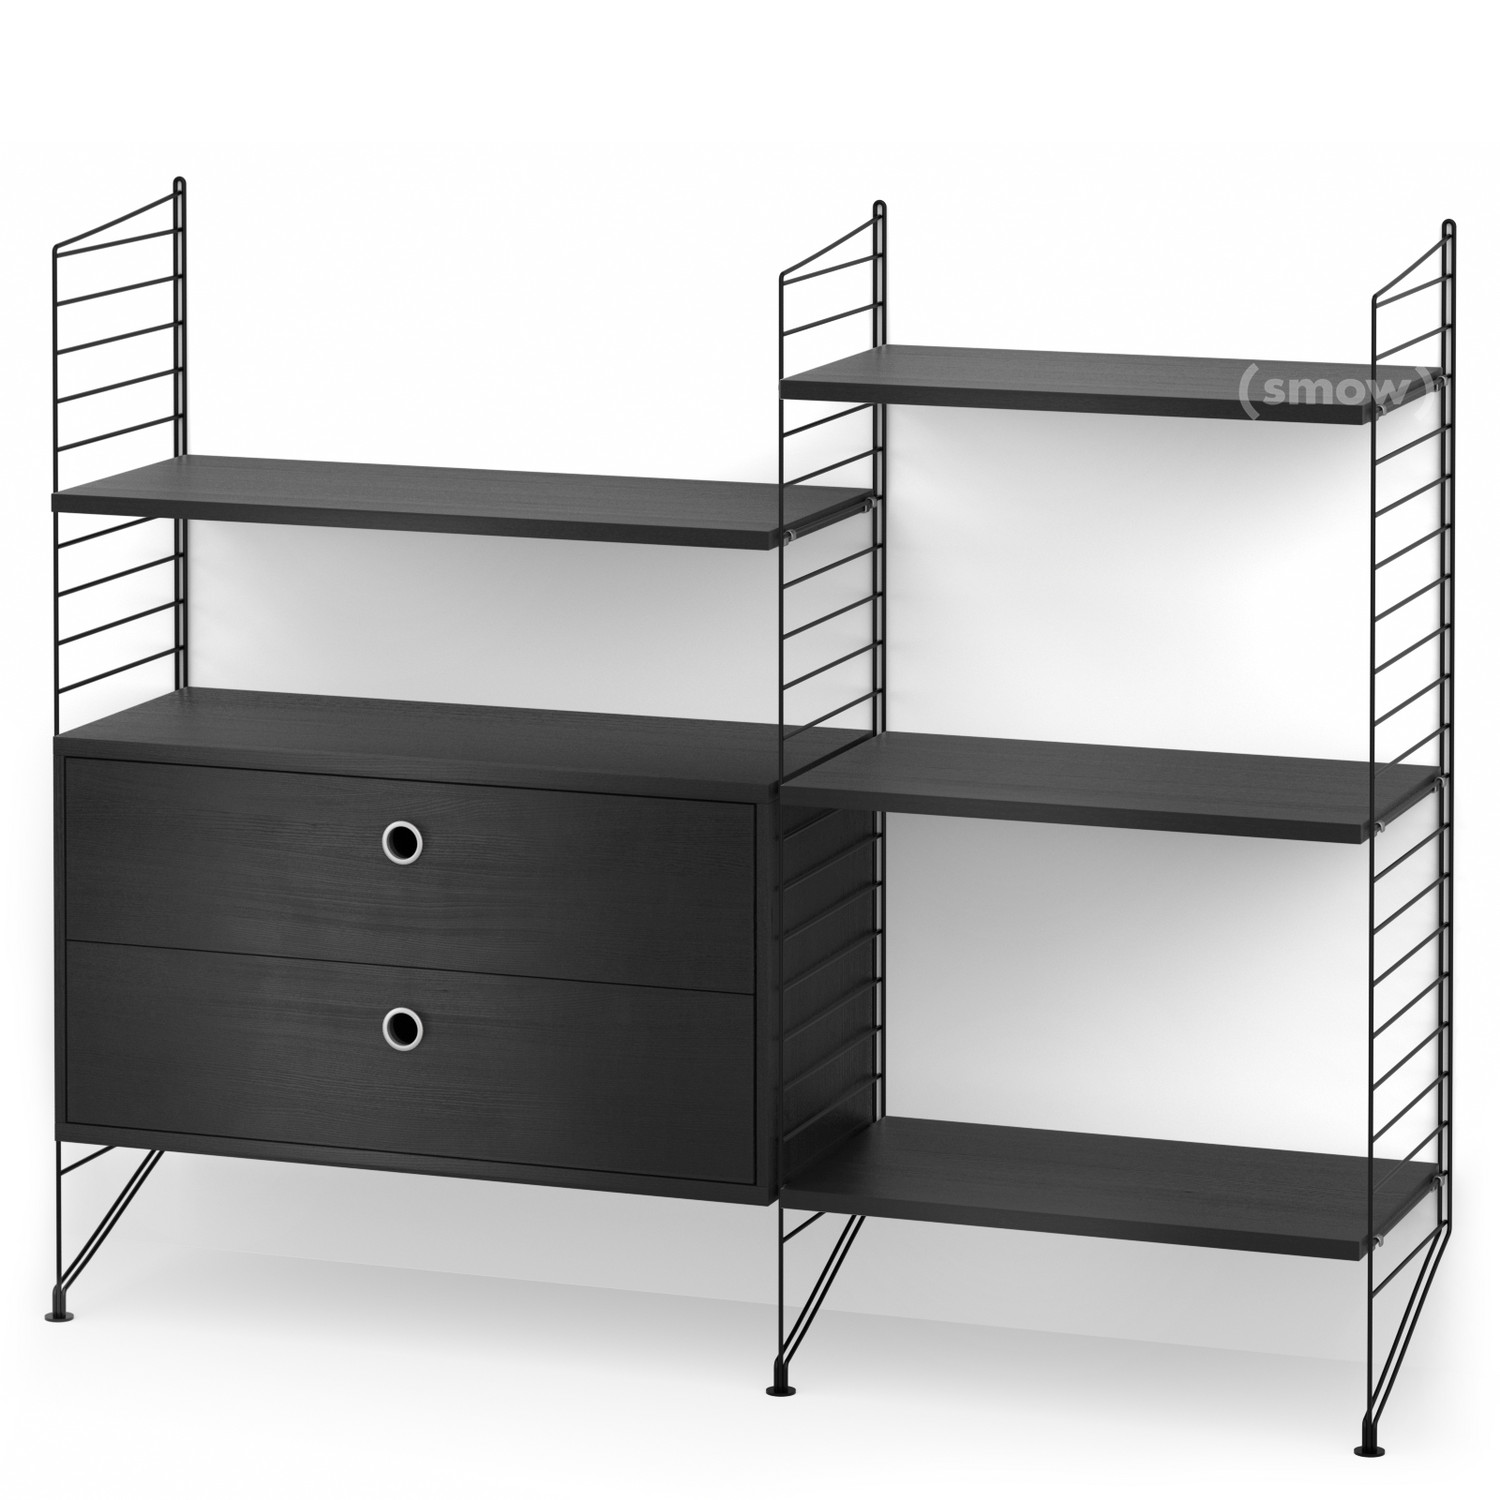 string system bodenregal mit schubladen schwarz. Black Bedroom Furniture Sets. Home Design Ideas